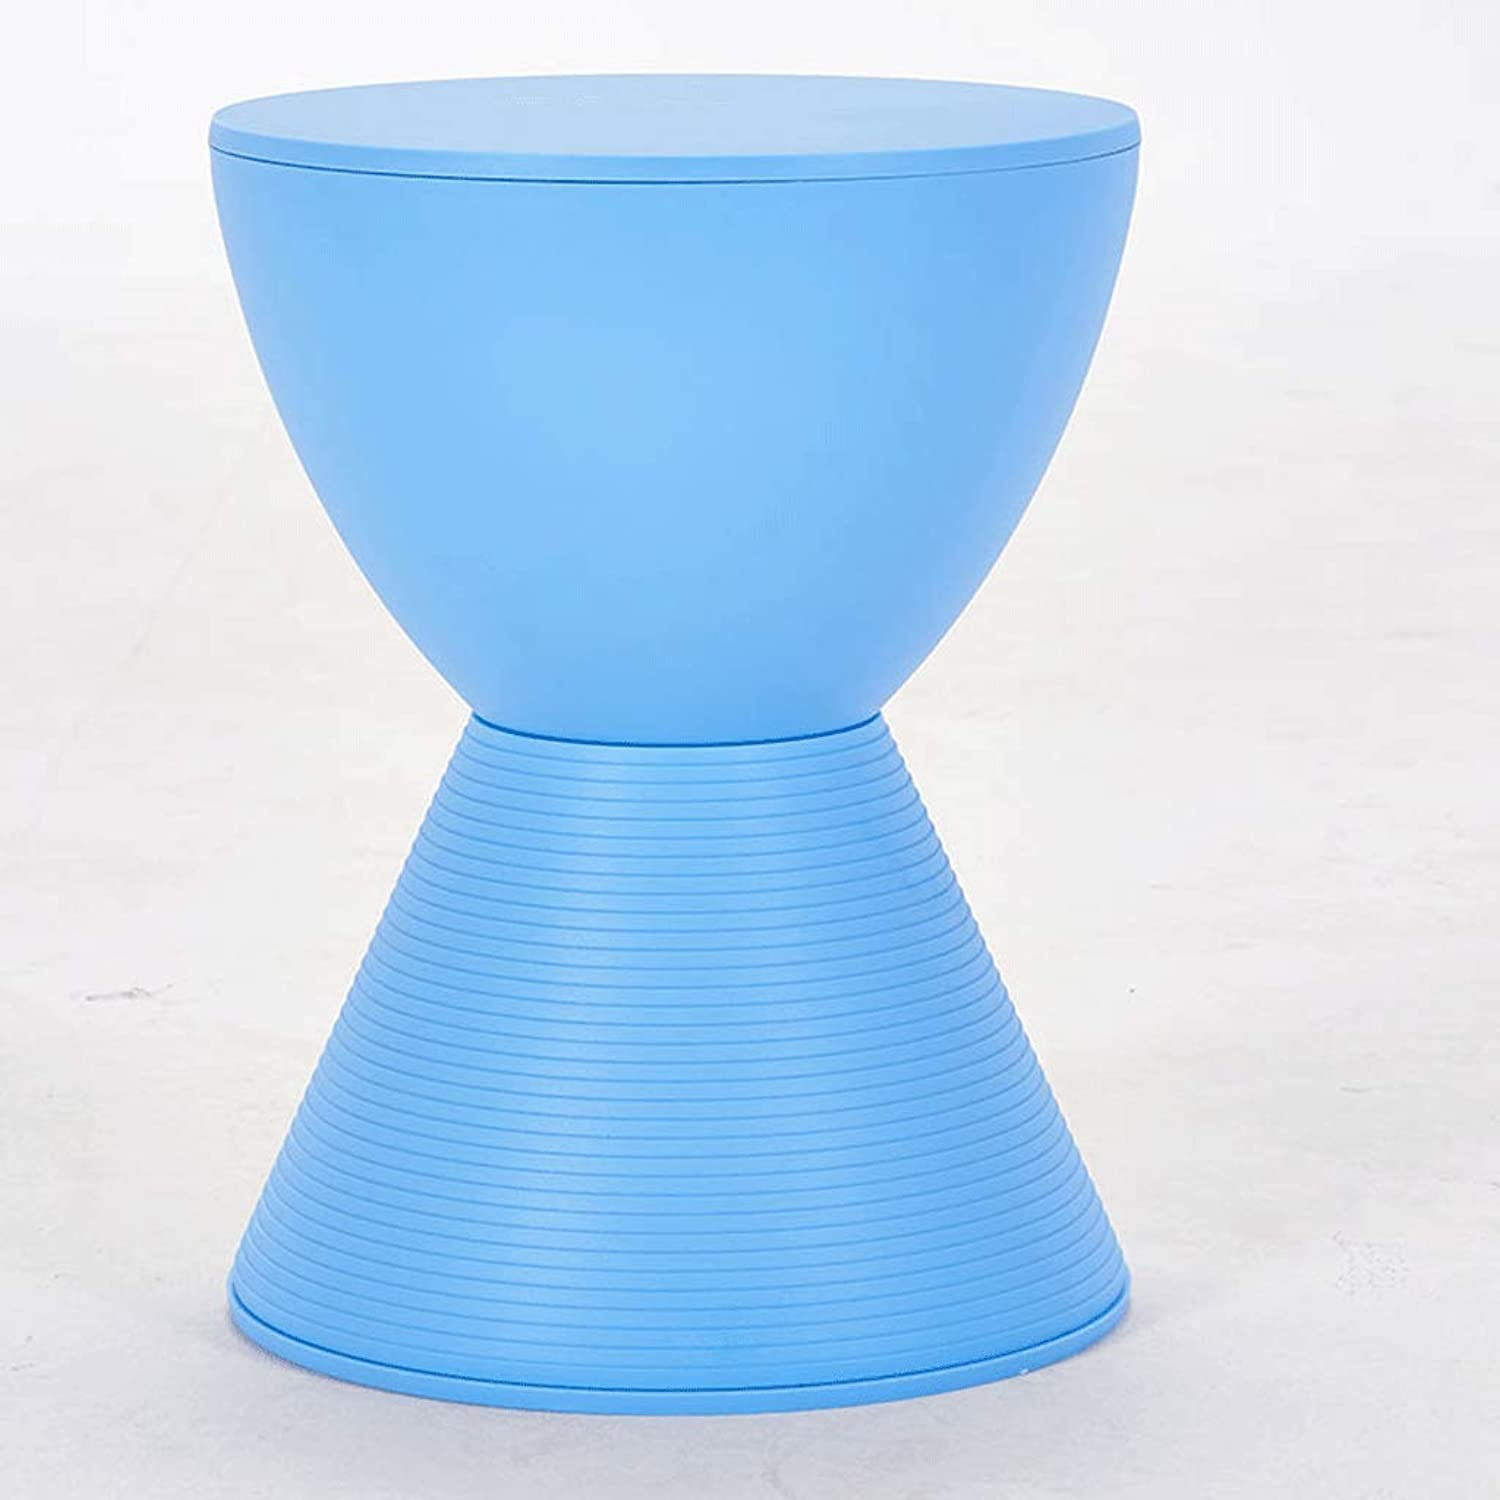 SLH Nordic Hourglass Plastic Small Bench Modern Home Simple Fashion Creative shoes Change Stool (color   bluee)